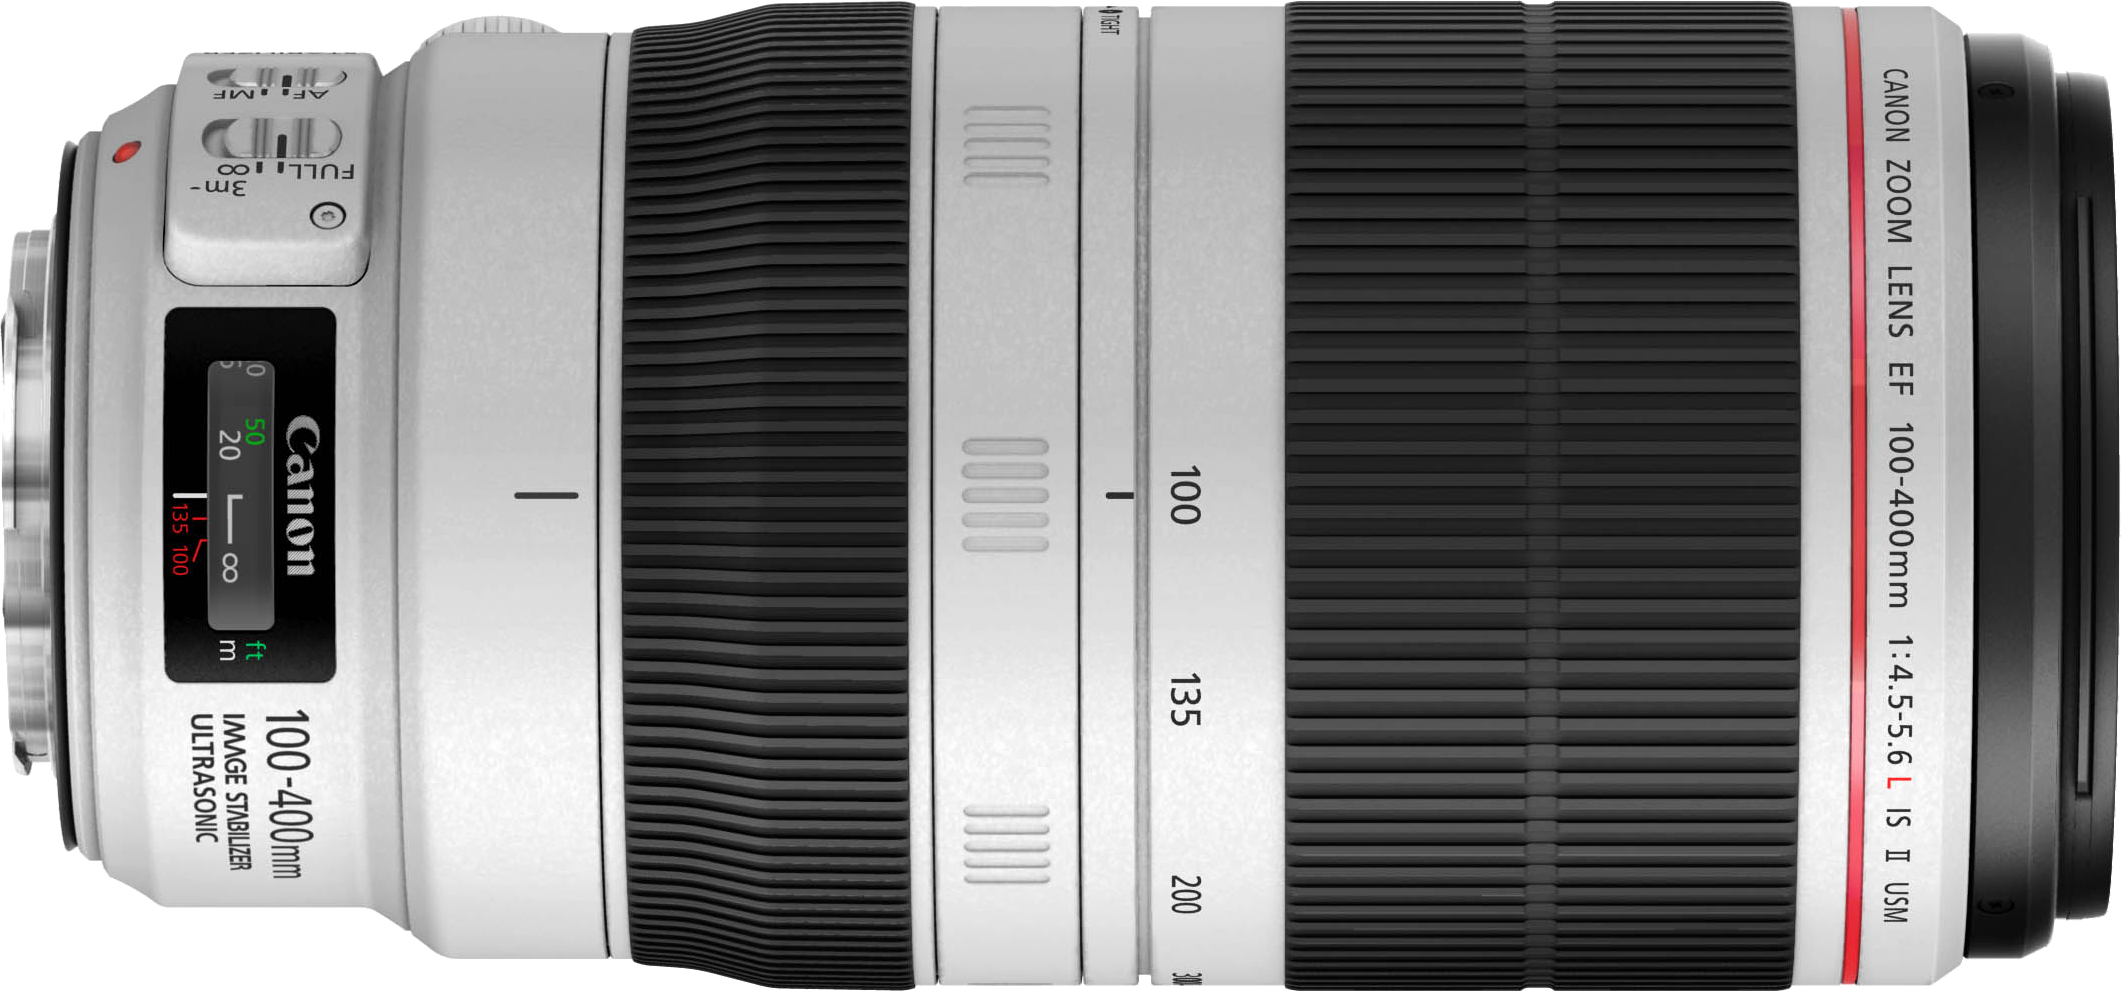 The second version of one of Canon's widest range, most versatile telephotos